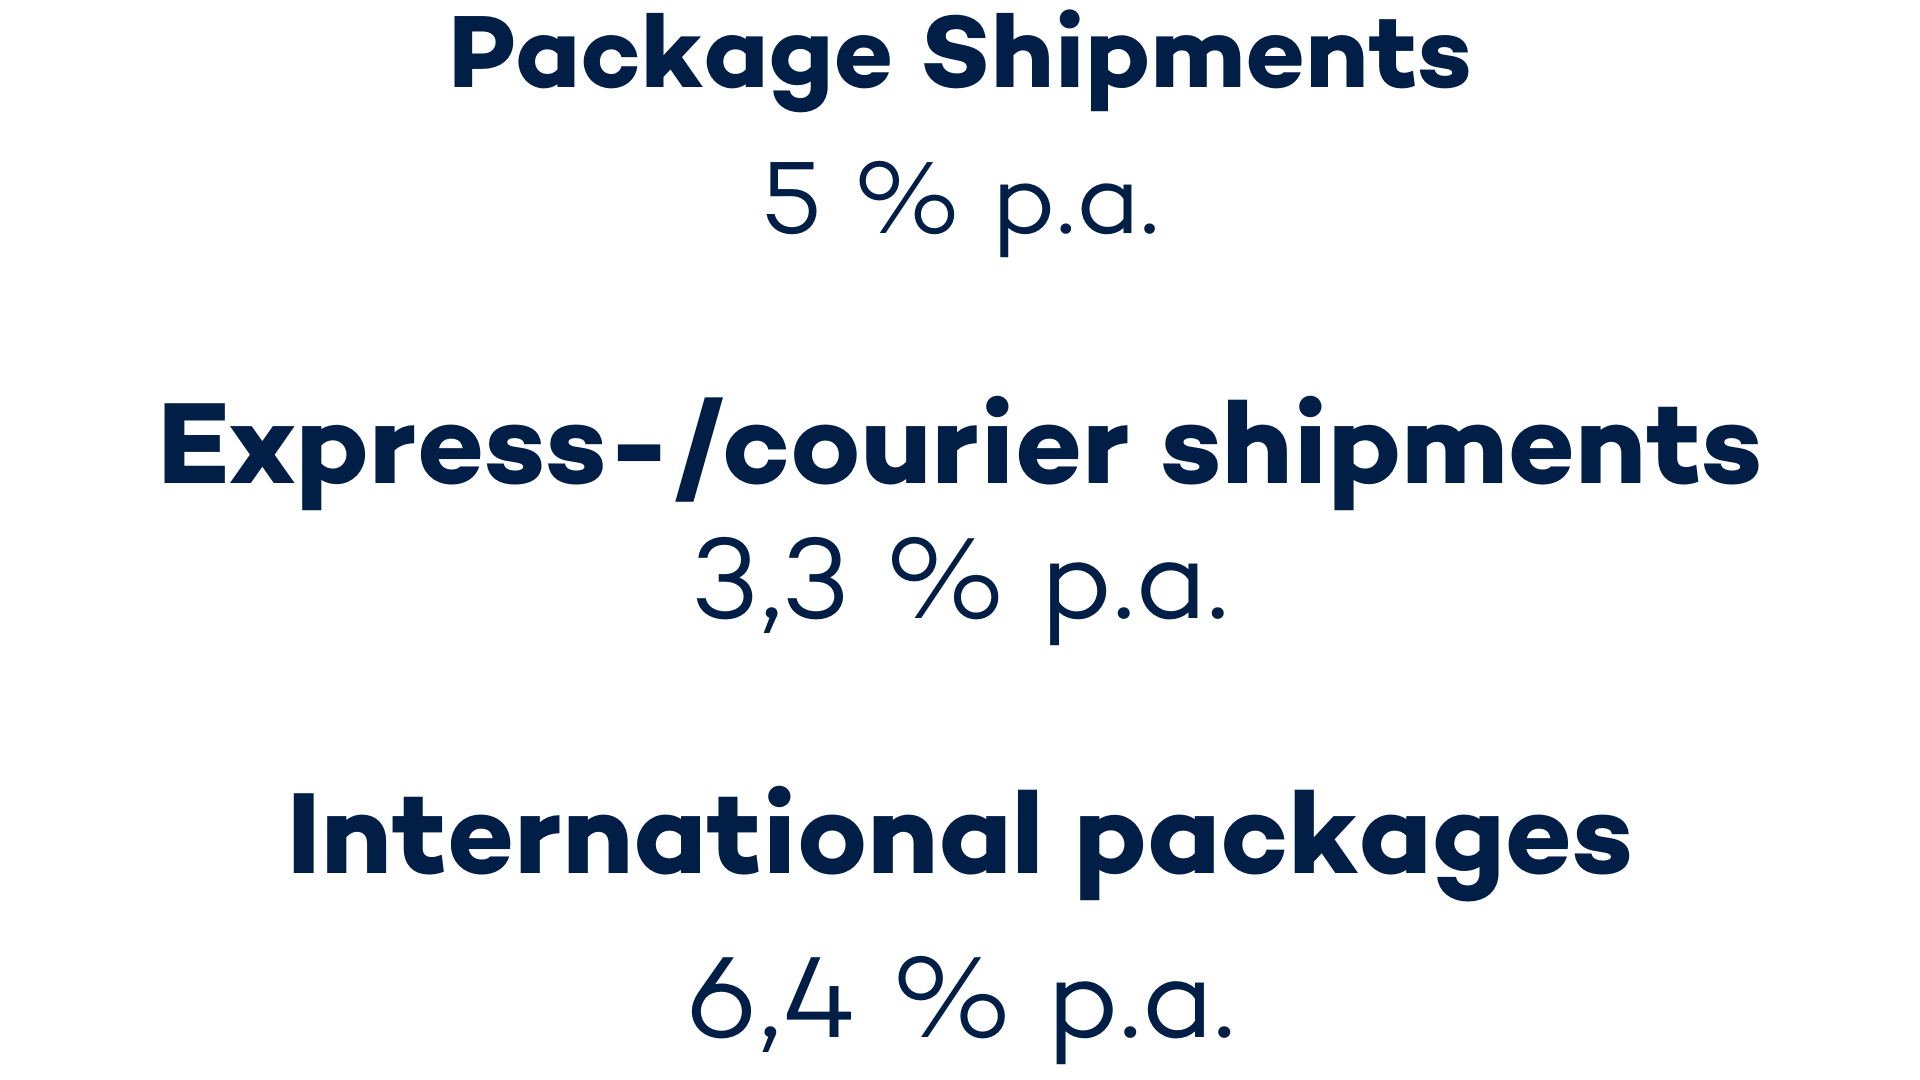 package shipments